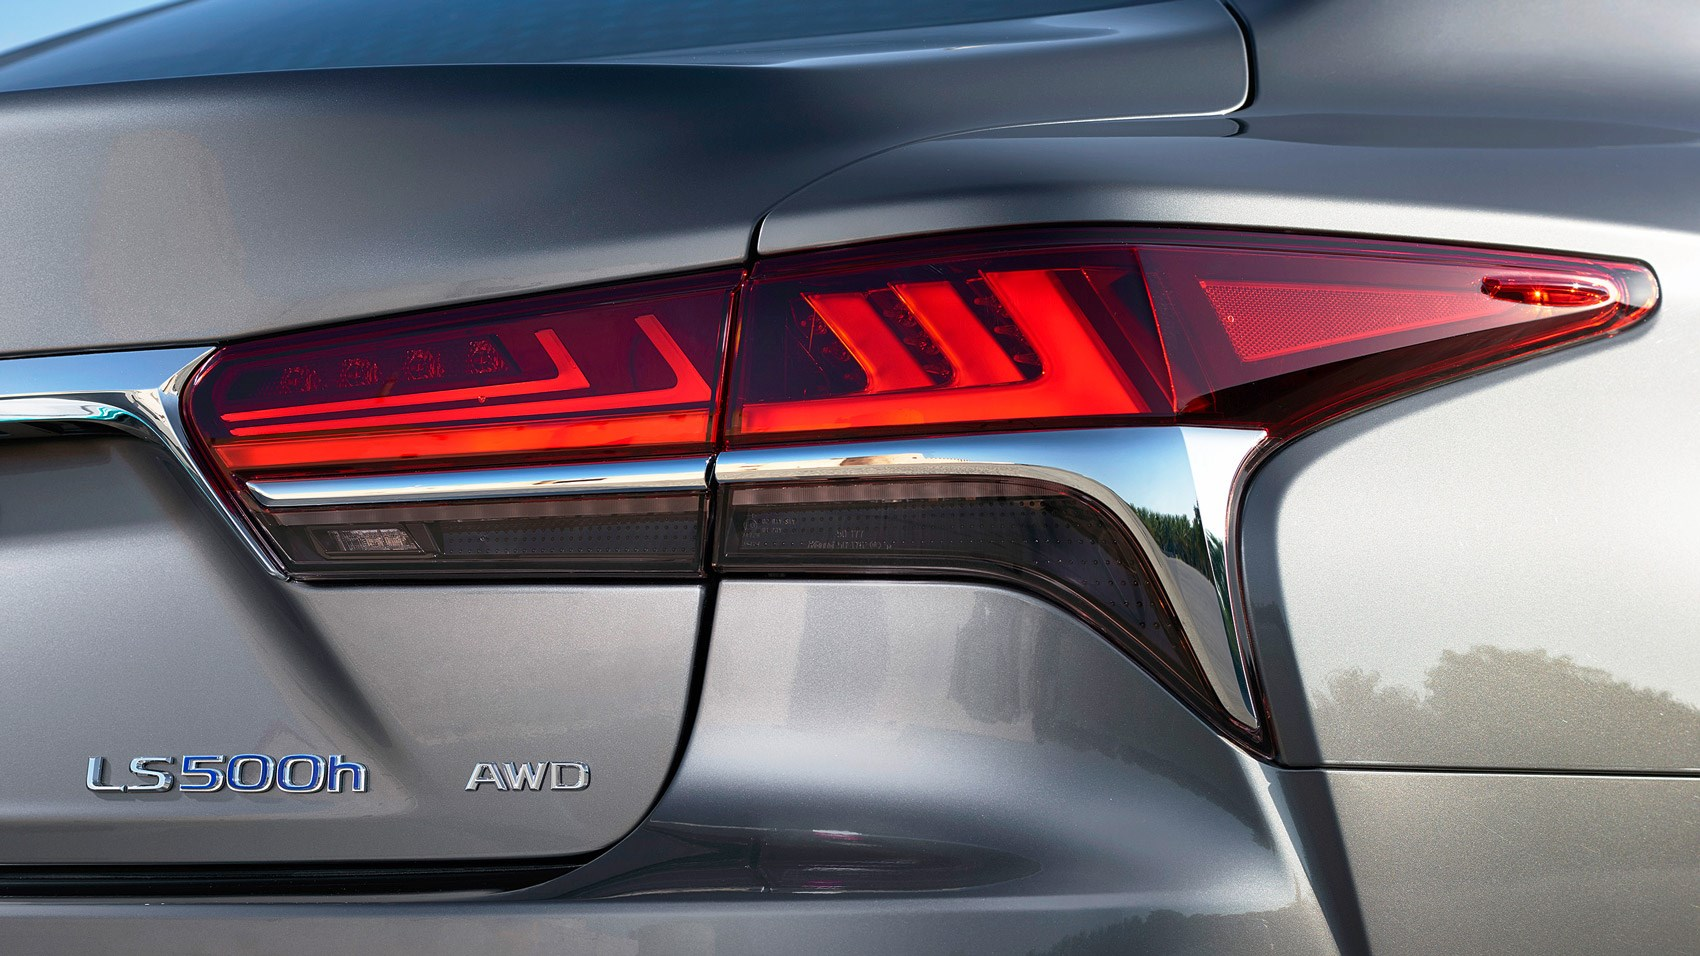 Lexus LS rear light detail